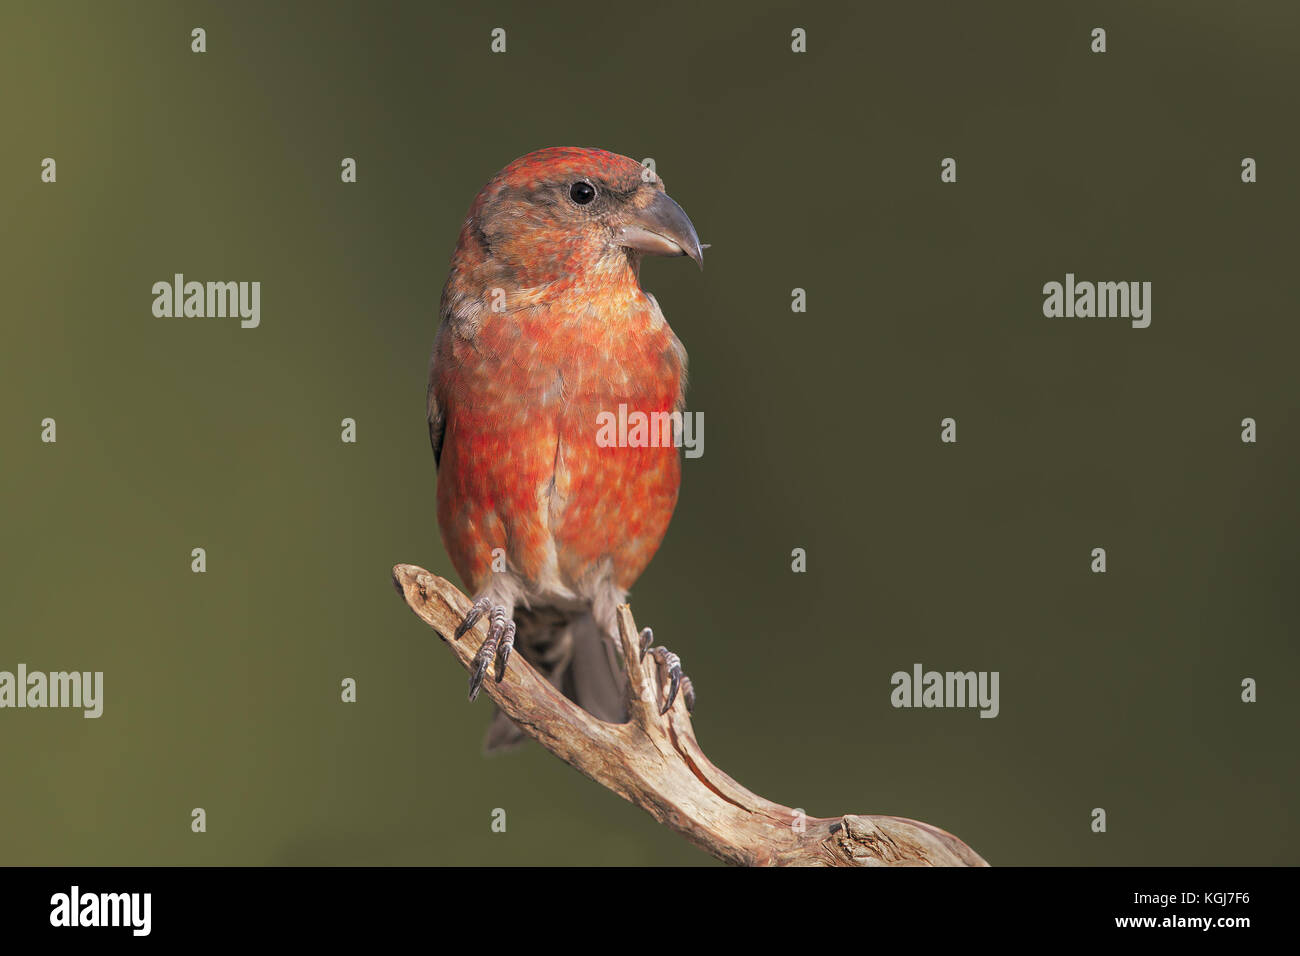 Male Crossbill - Stock Image